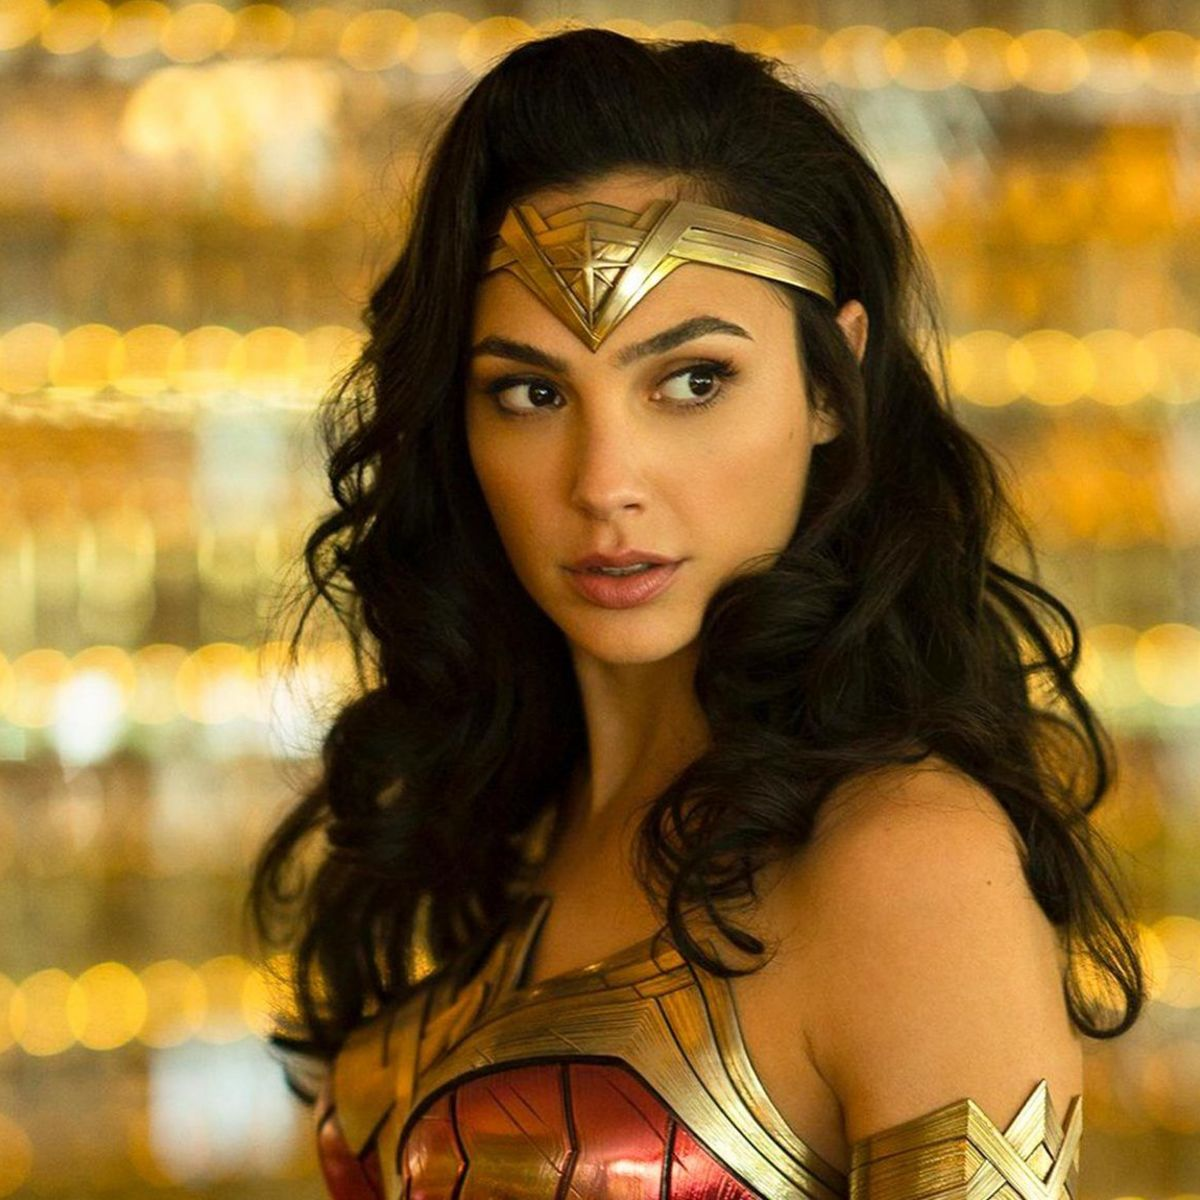 Wonder Woman 1984 release delayed to 2020